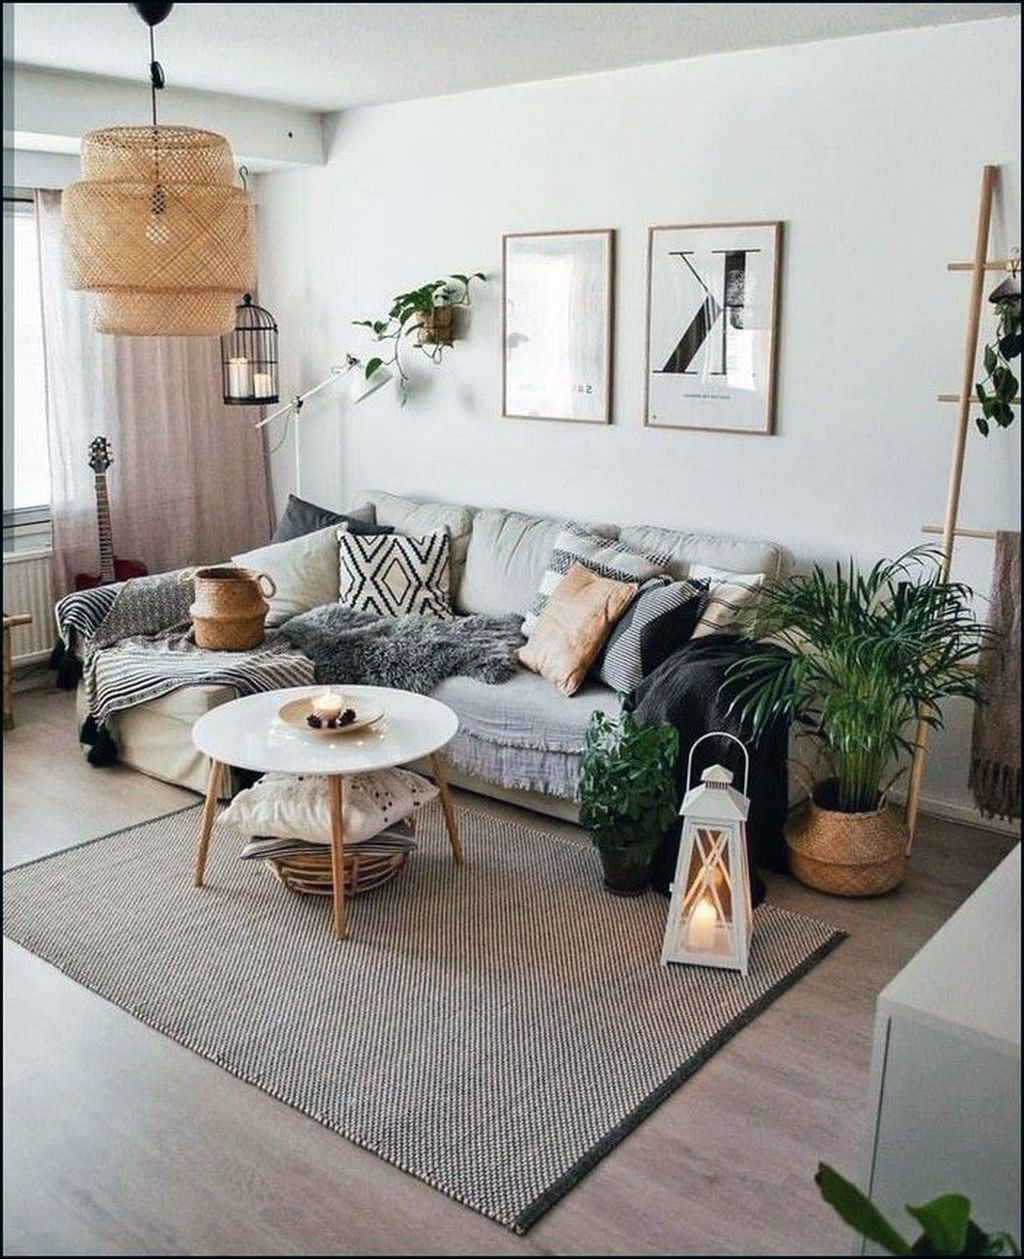 Appealing Home Decor Ideas Living Room Modern Boho area Rug with Plum Accents On Gorgeous 28 Marvelous Scandinavian Living Rooms with Boho Style Ideas On Home Decor Ideas Living Room Modern Boho area Rug with Plum Accents